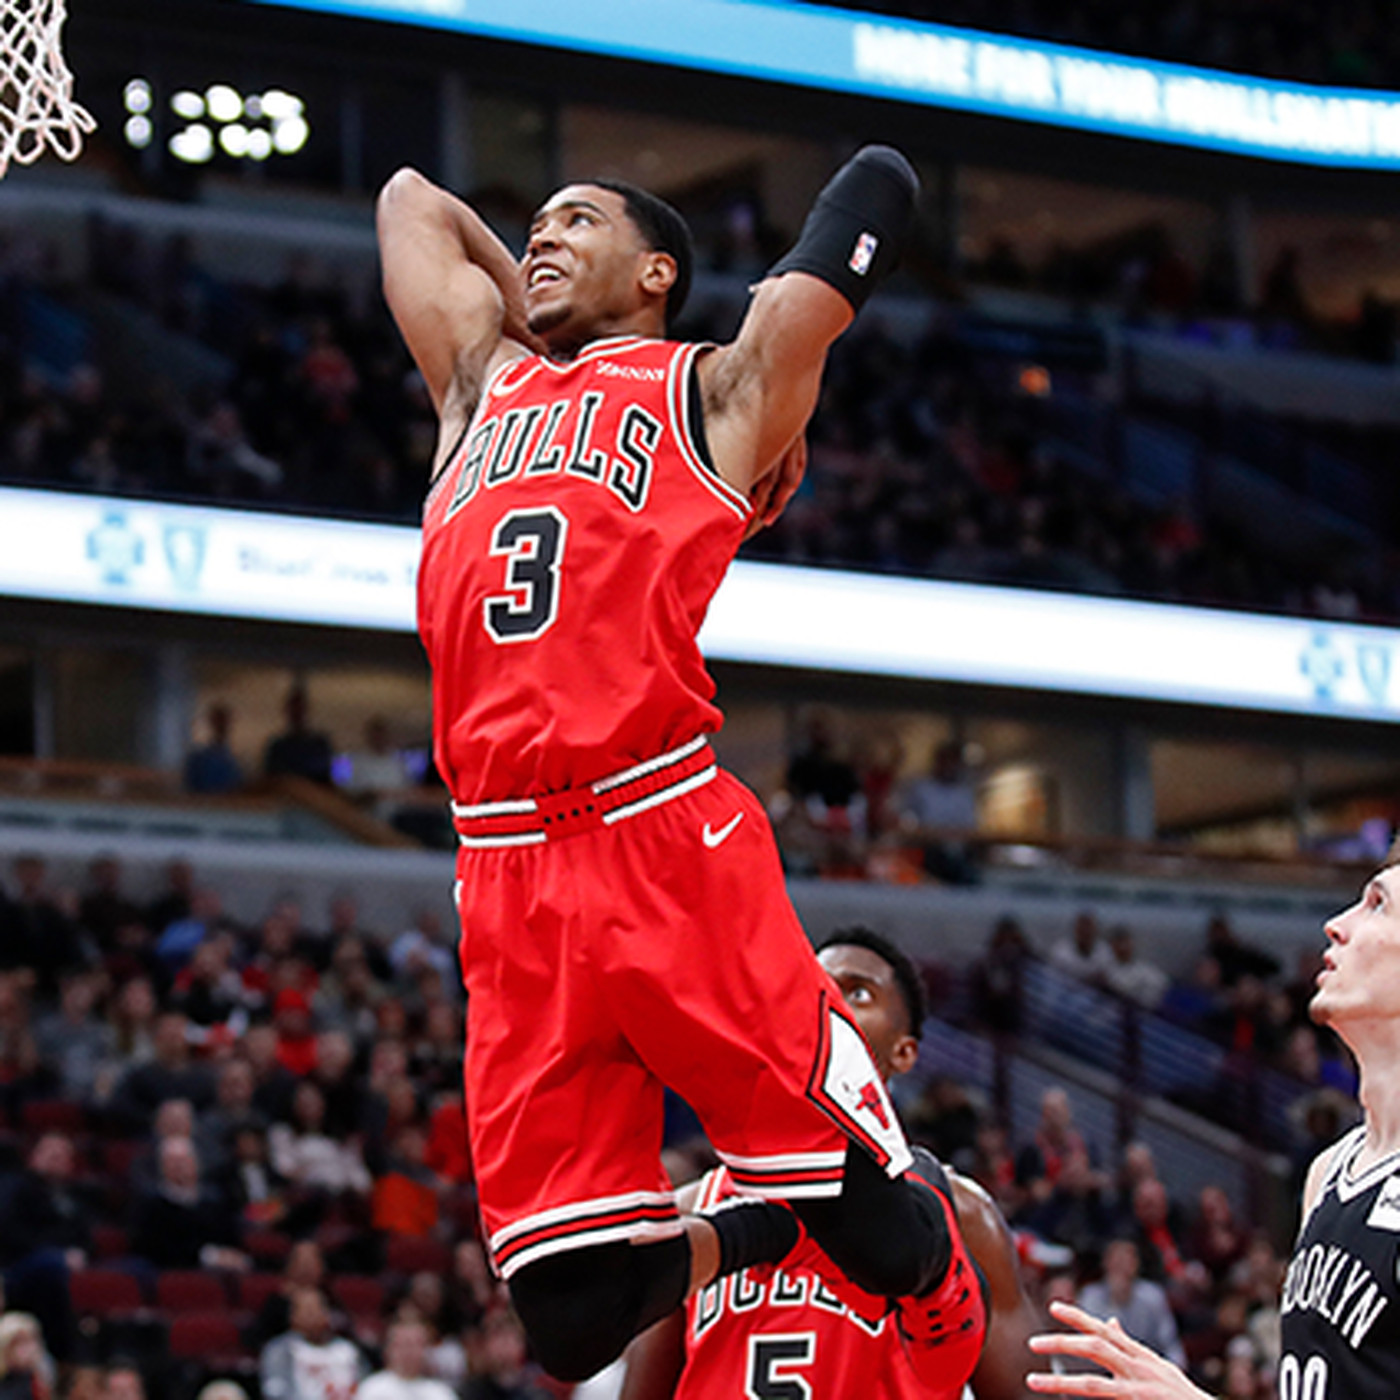 new arrival 5579f 43de4 Shaq is back: Bulls sign guard Shaquille Harrison to one ...